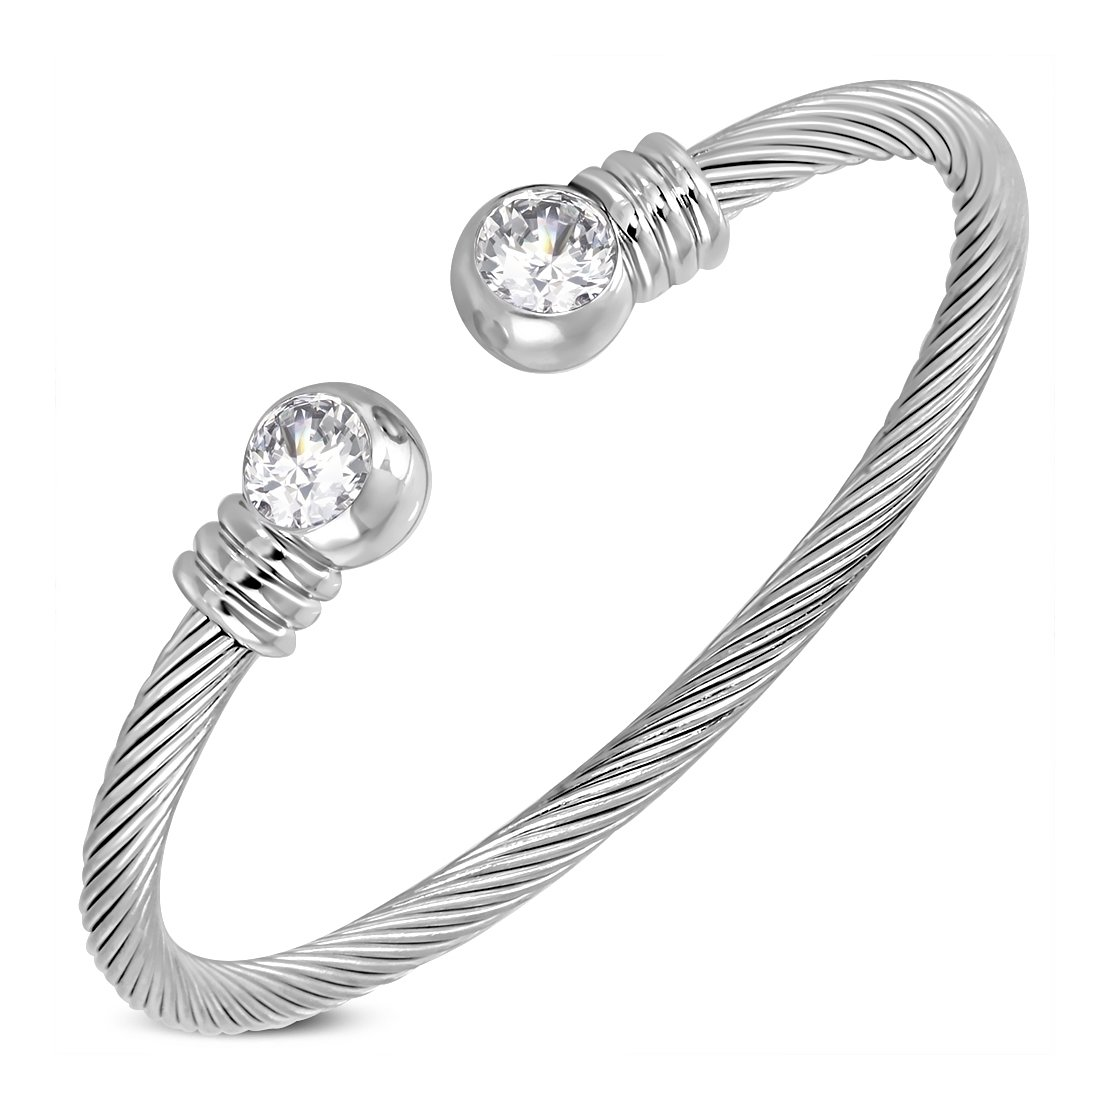 Stainless Steel Celtic Twisted Cable Wire Torc Cuff Bangle with Alloy Round End Caps /& Clear CZ Length 8